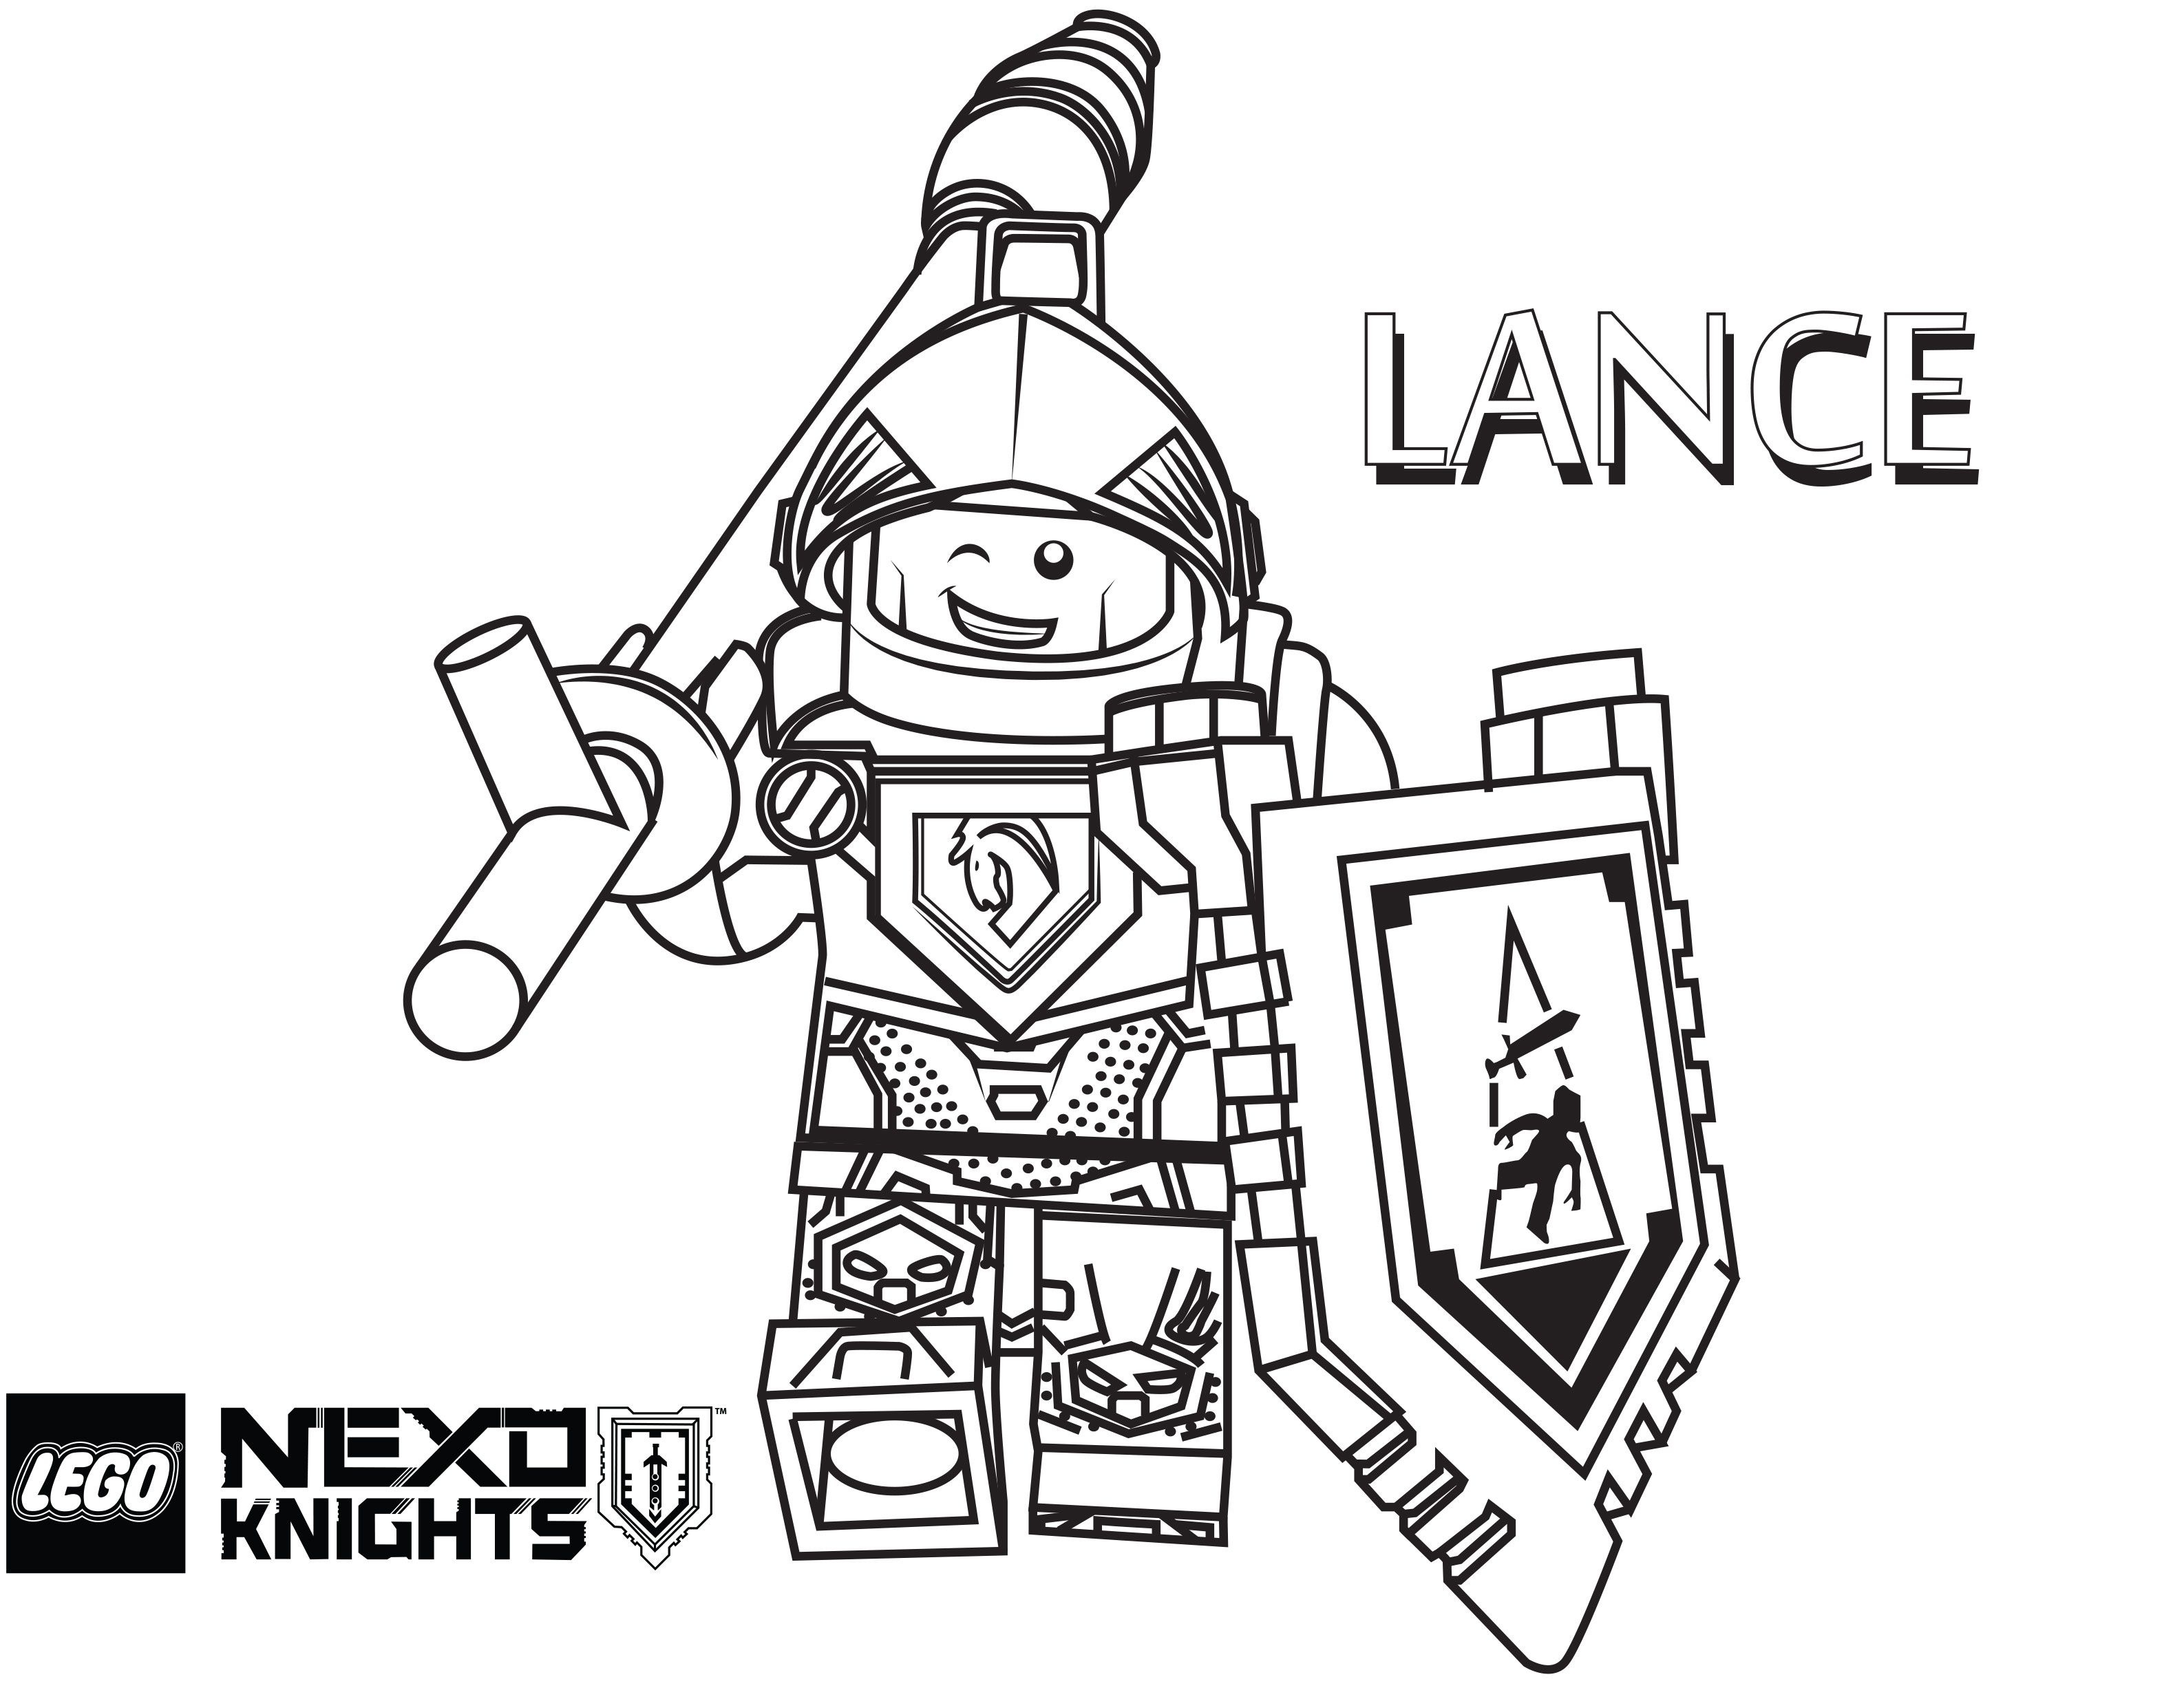 Lego Nexo Knights Coloring Pages : Free Printable Lego Nexo Knights - Free Printable Pictures Of Knights